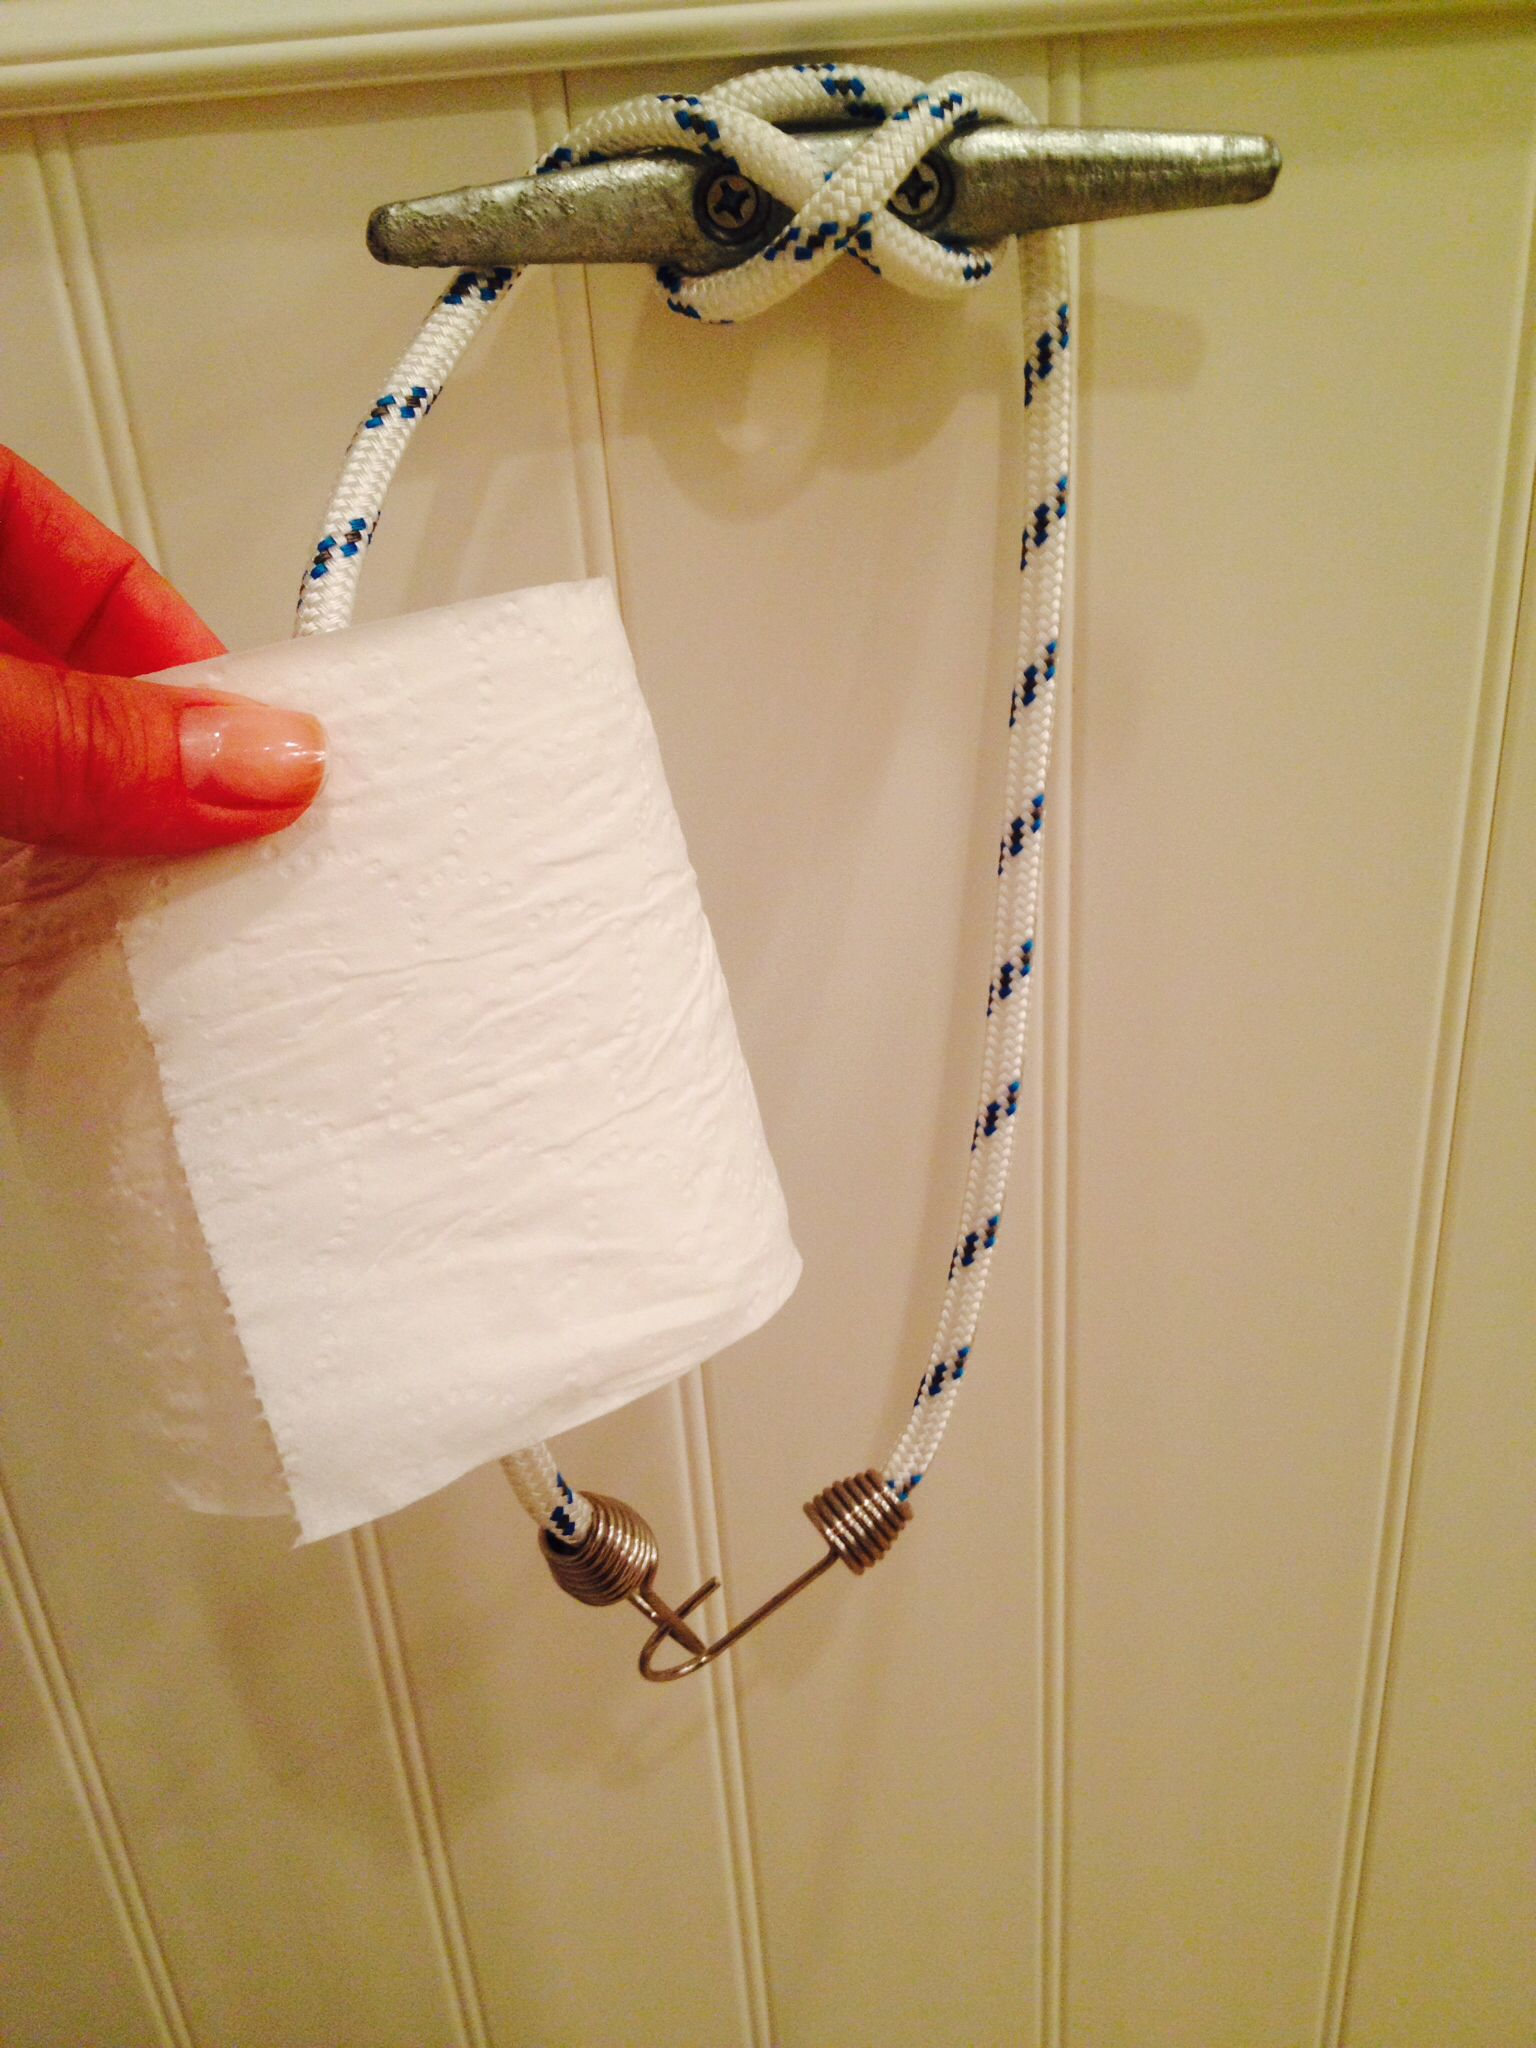 Boat Cleat Toilet Paper Holder Pic Shows How I Held It Together